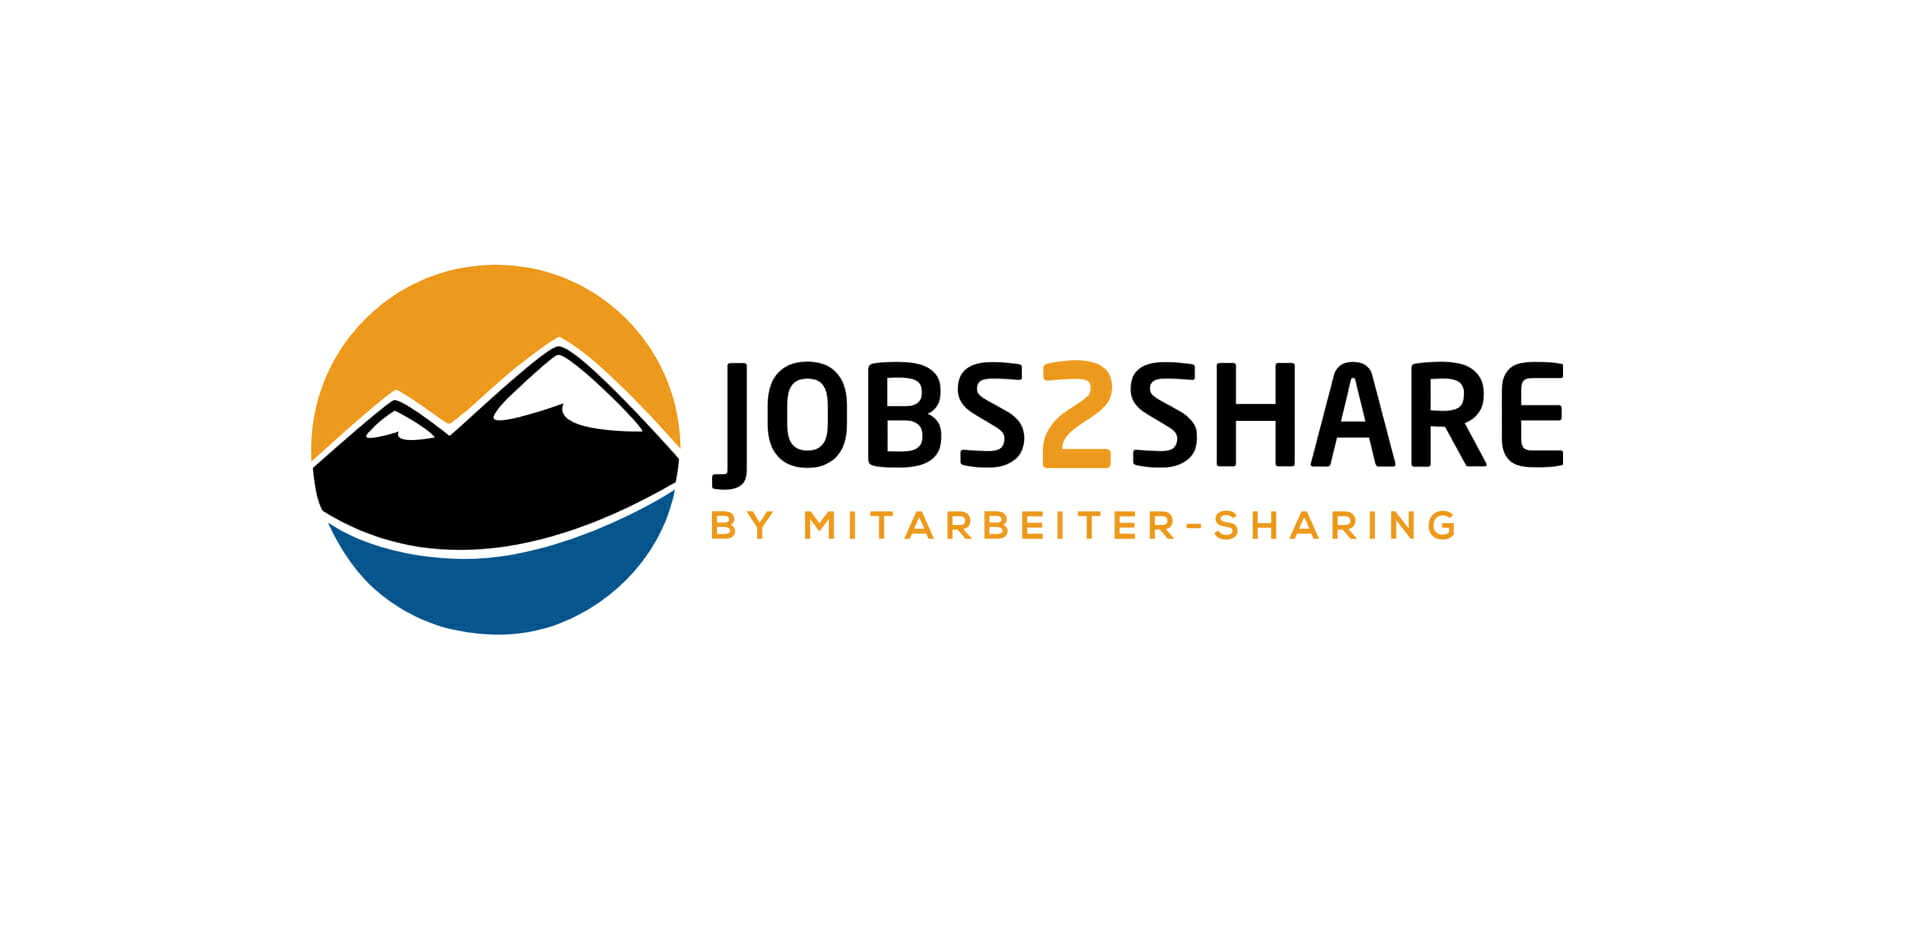 Jobs2Share – Mitarbeiter-Sharing Career Day 2019